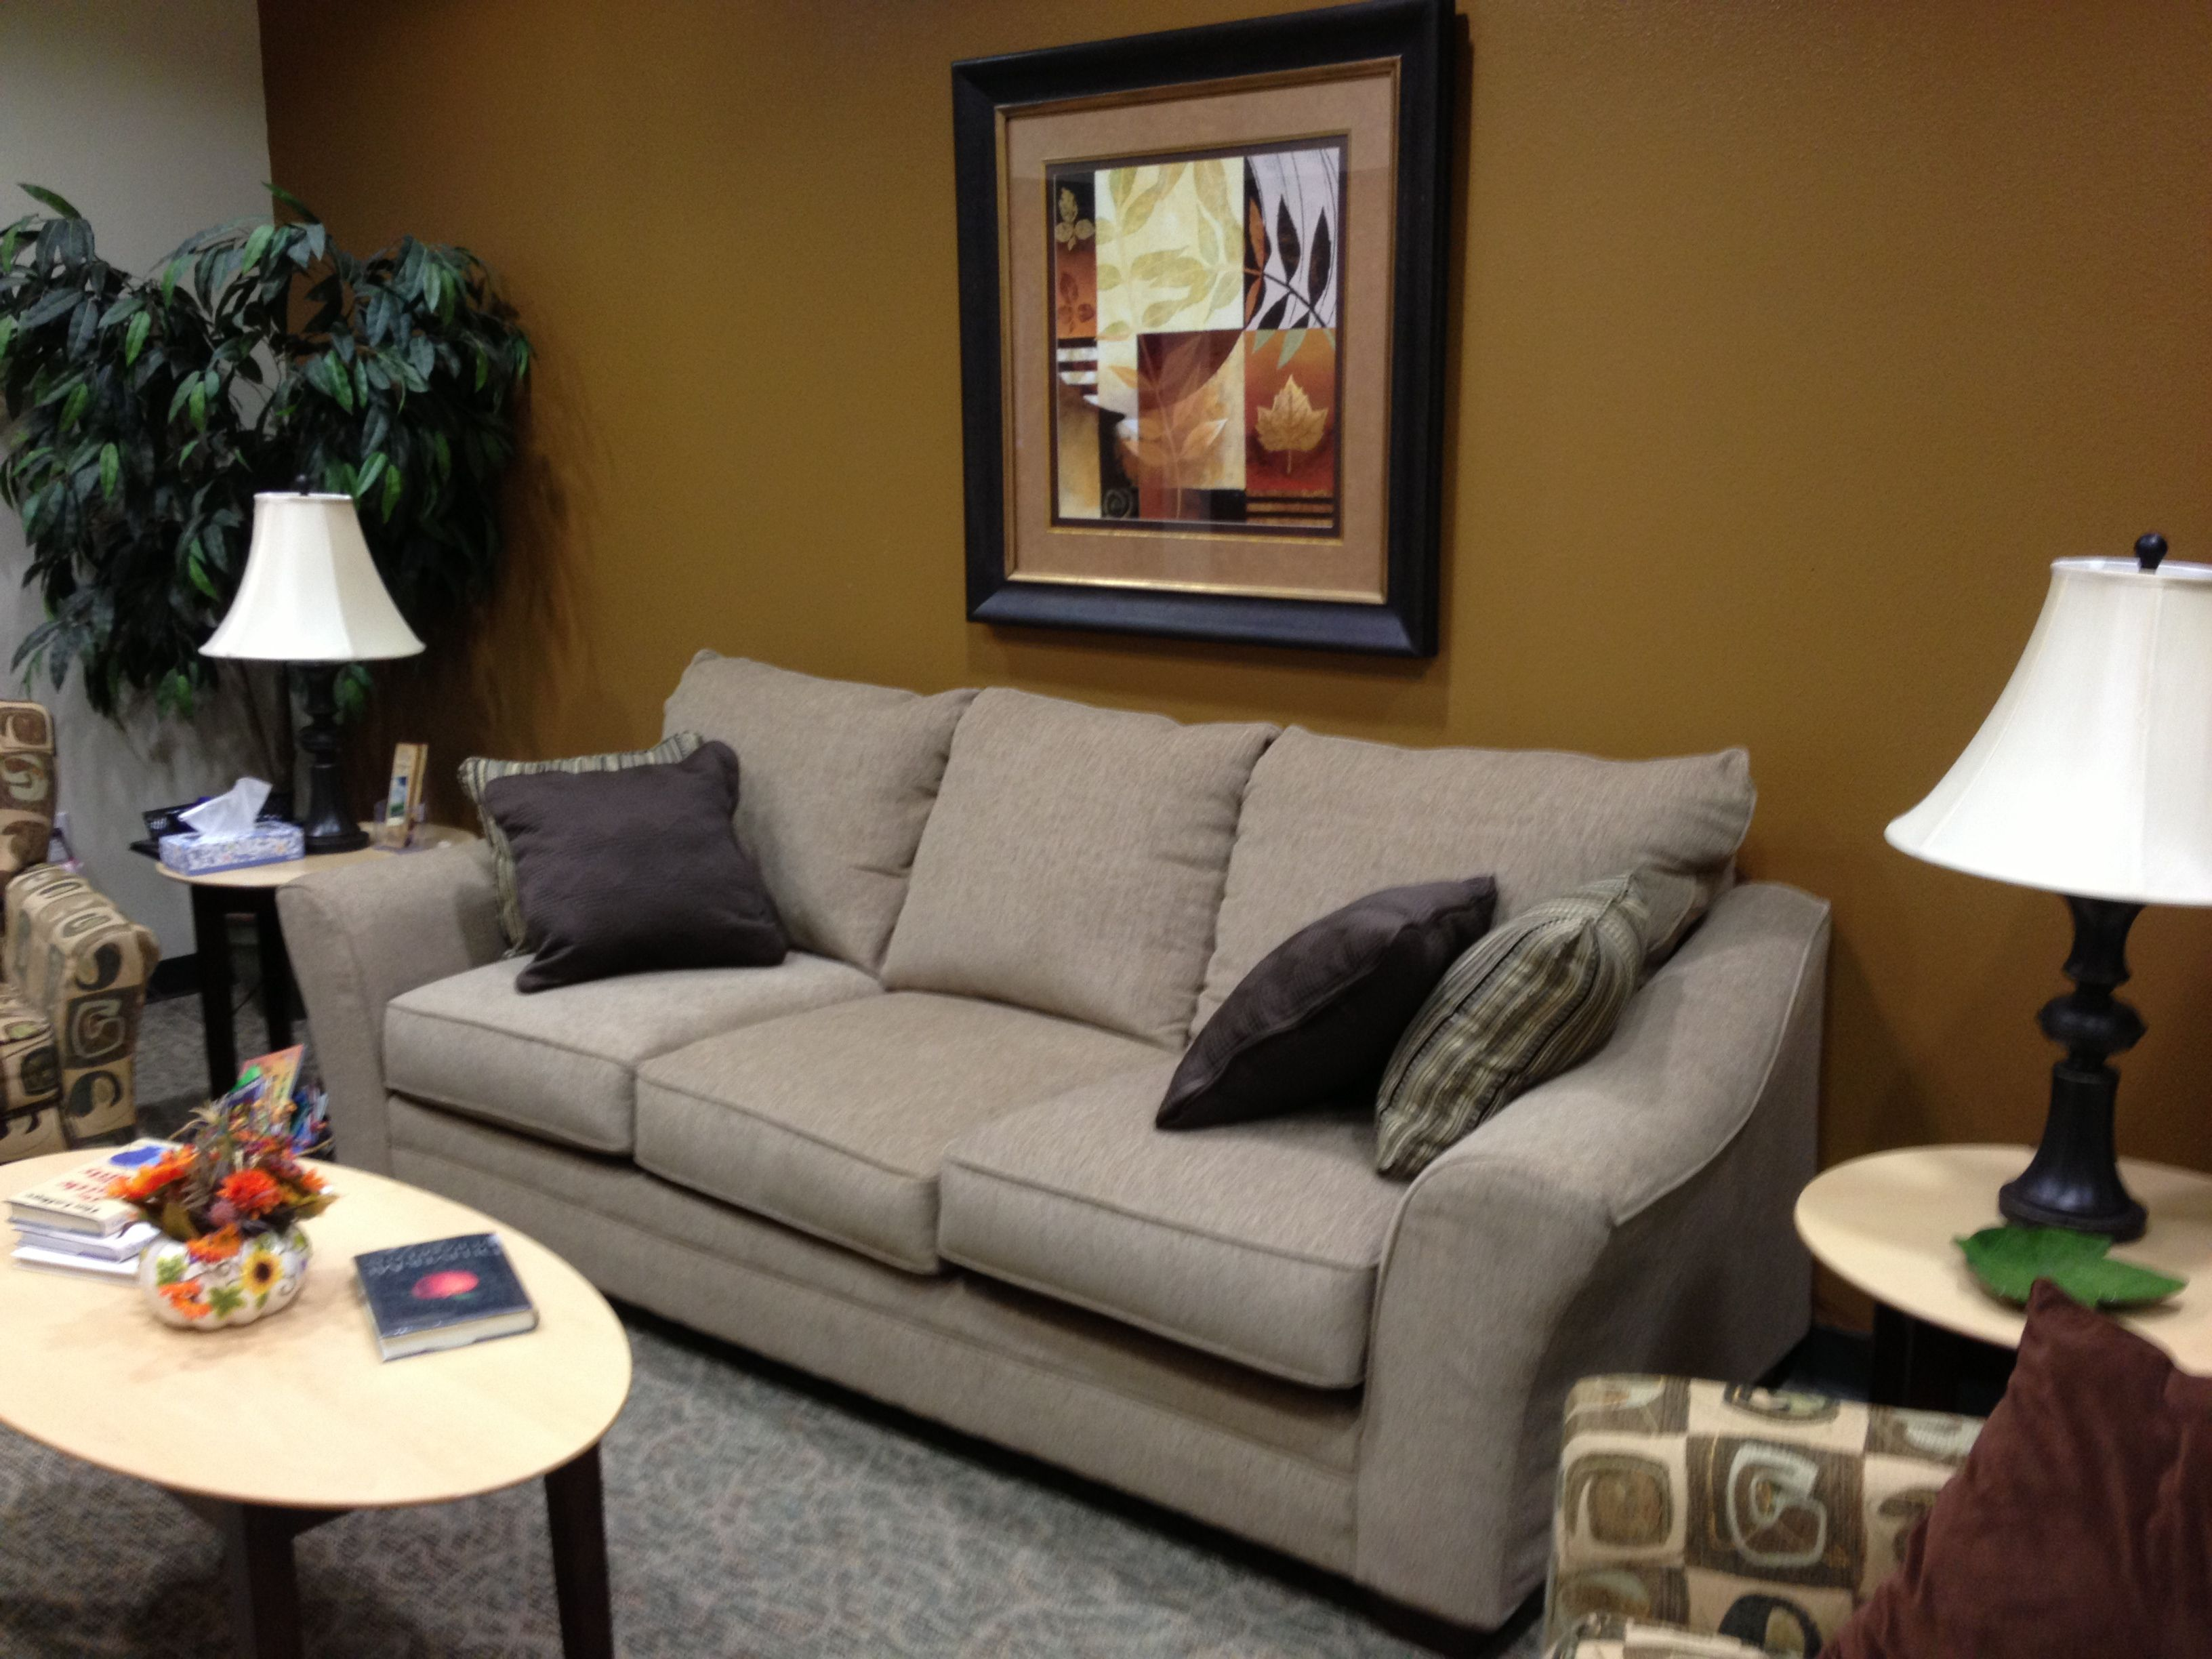 Cecilyrodgers Home Counseling Office Decor Waiting Room Decor Counseling Decor